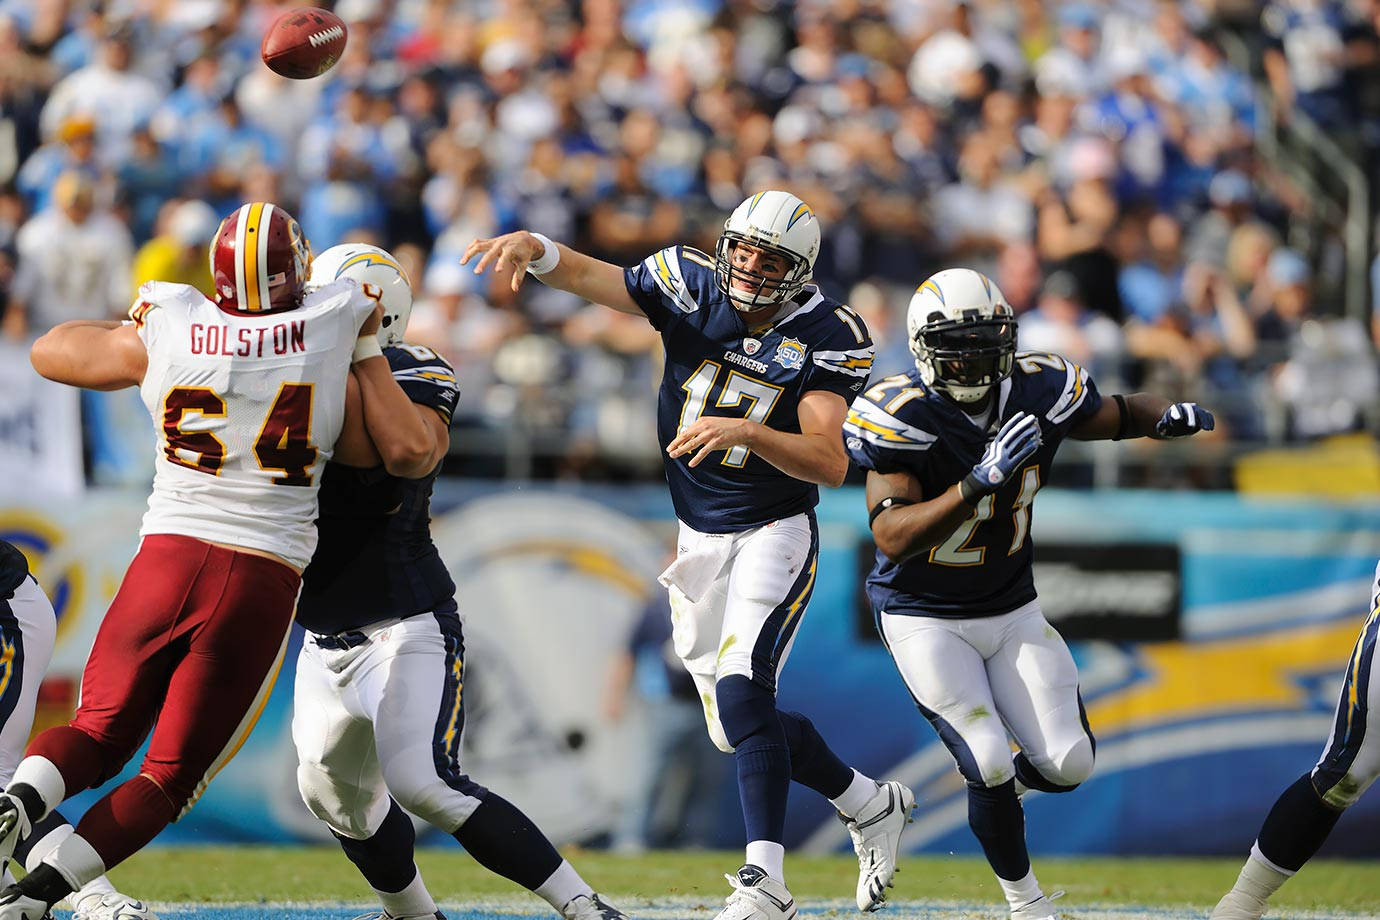 The Chargers headed into the playoffs on an 11-game winning streak. Although the play of their backups in the final game of the regular season set the franchise record, it was quarterback Philip Rivers who led San Diego all season, finishing with 28 TD passes, 9 interceptions, and a career-high 4,254 passing yards.